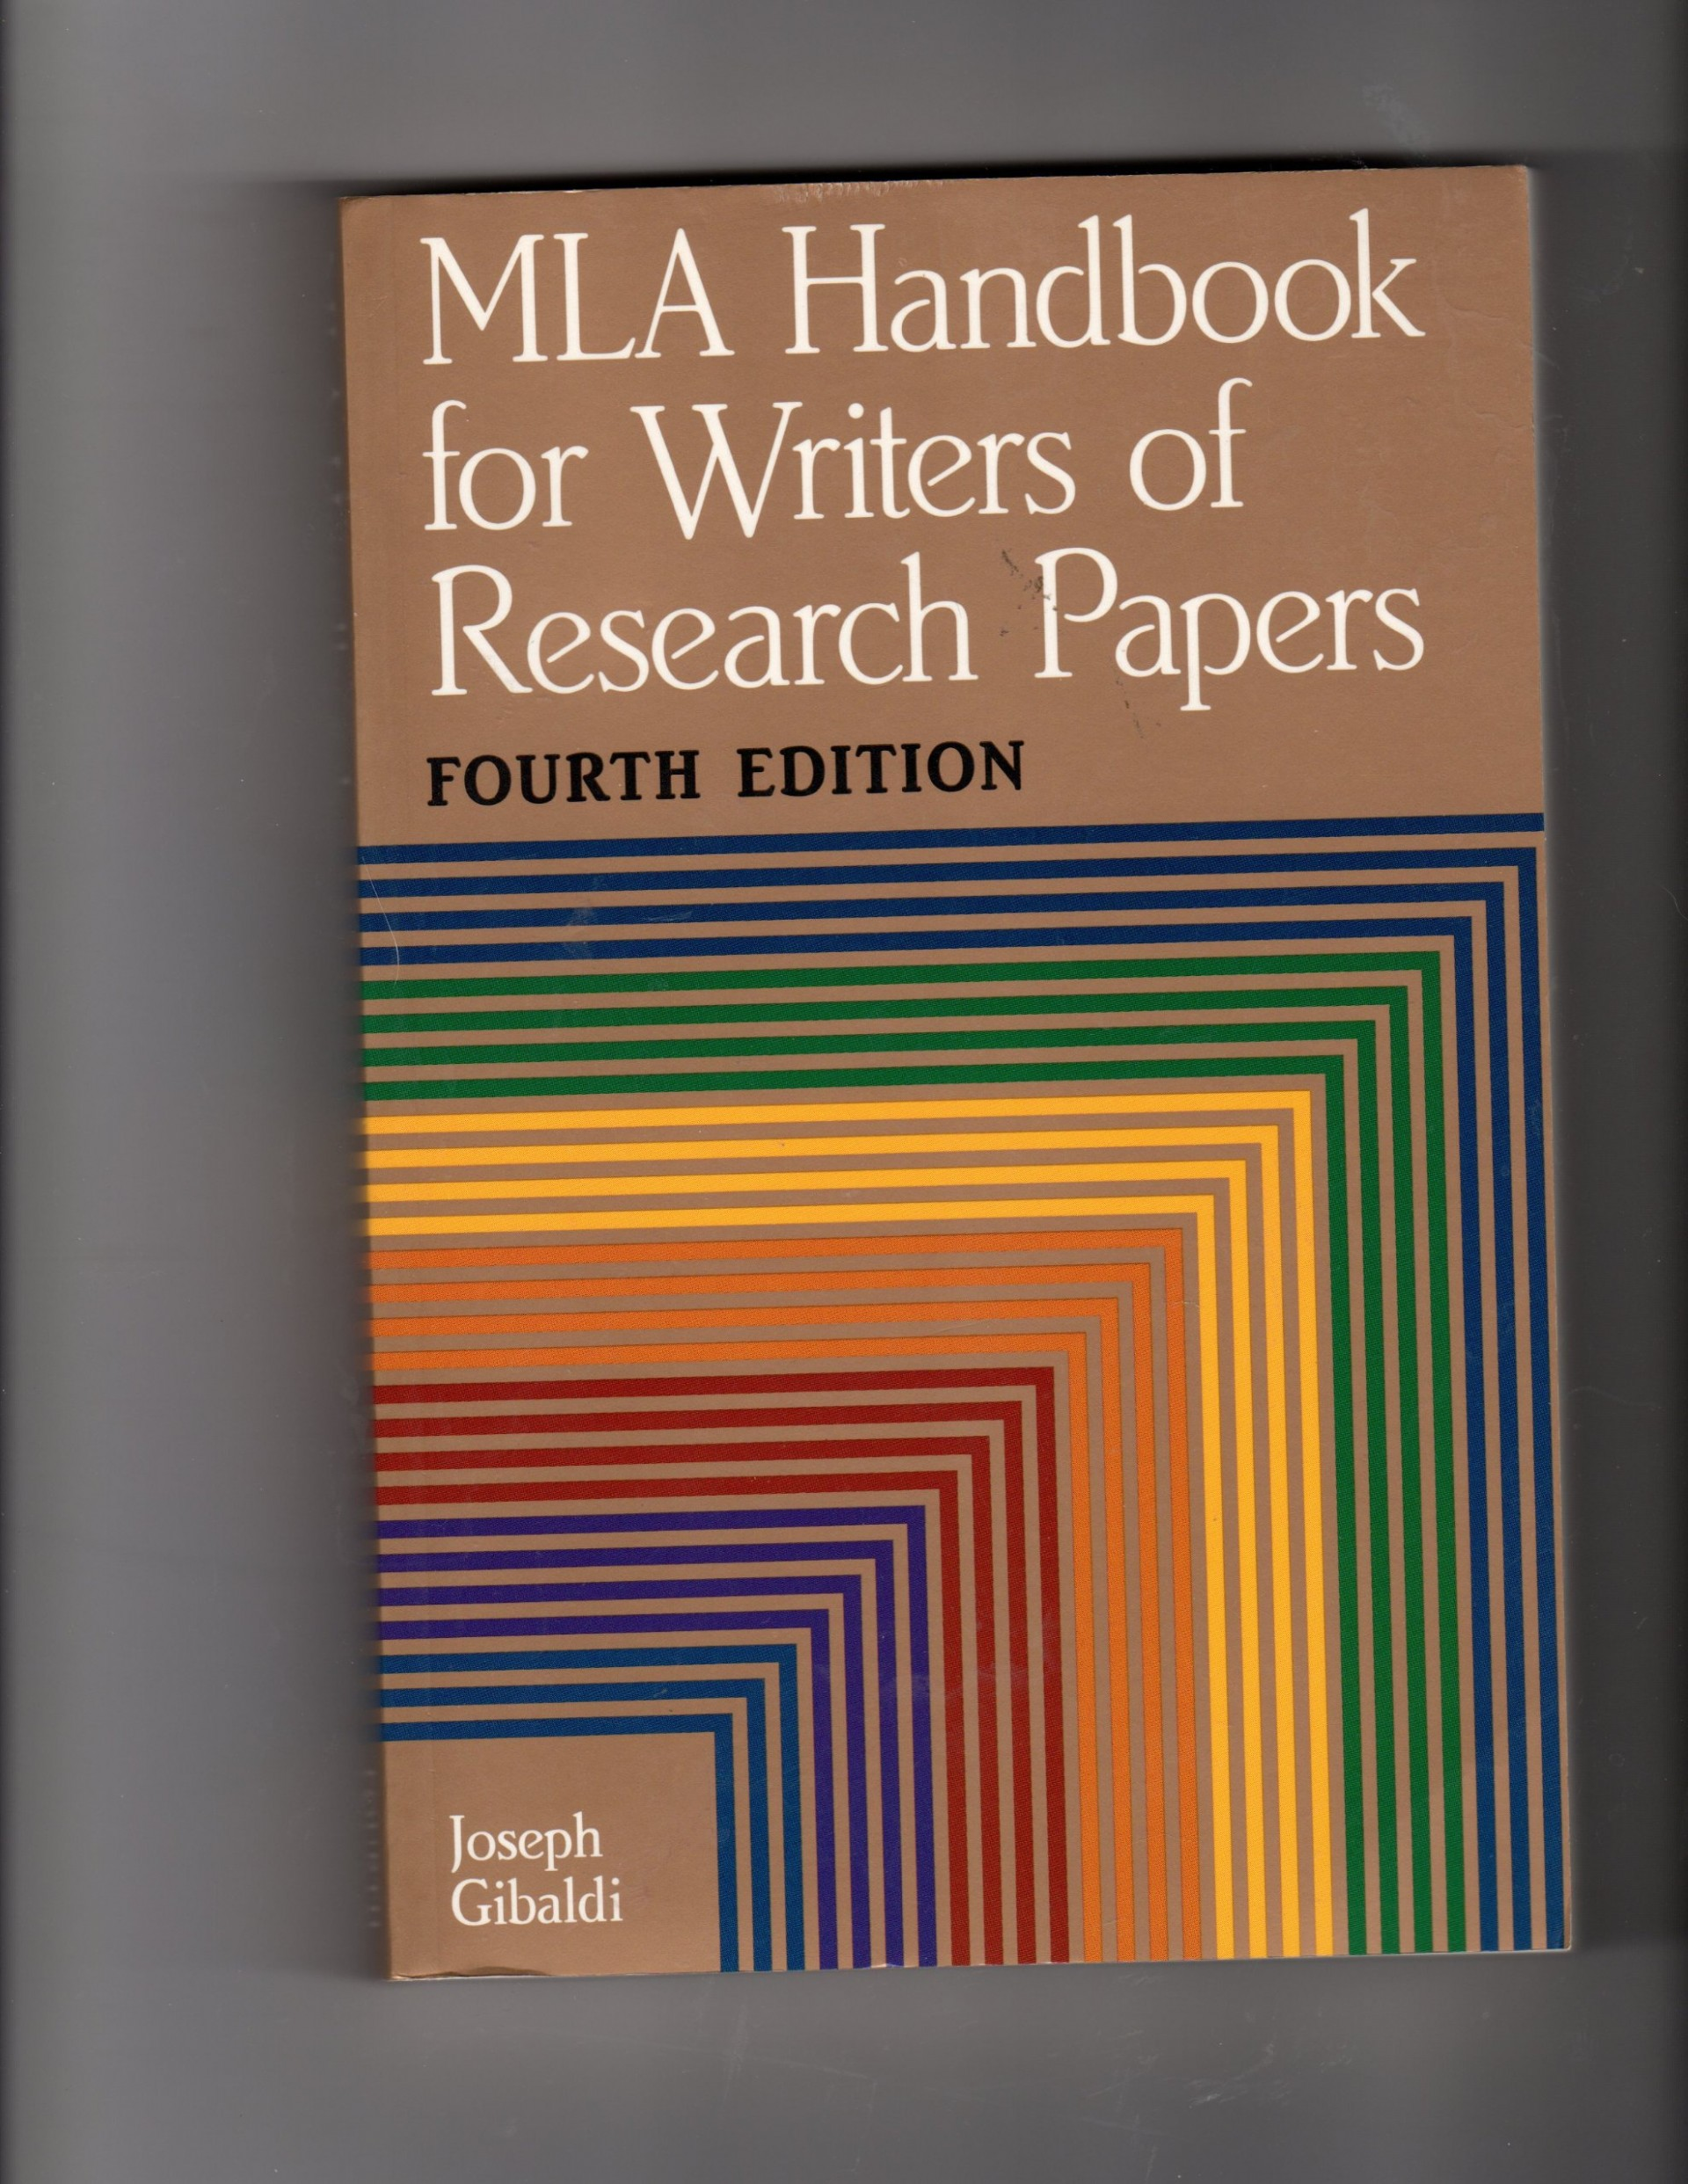 005 According To The Mla Handbook For Writers Of Researchs Sixth Edition 91or7esc2gl Marvelous Research Papers A Thesis Statement Is 1920